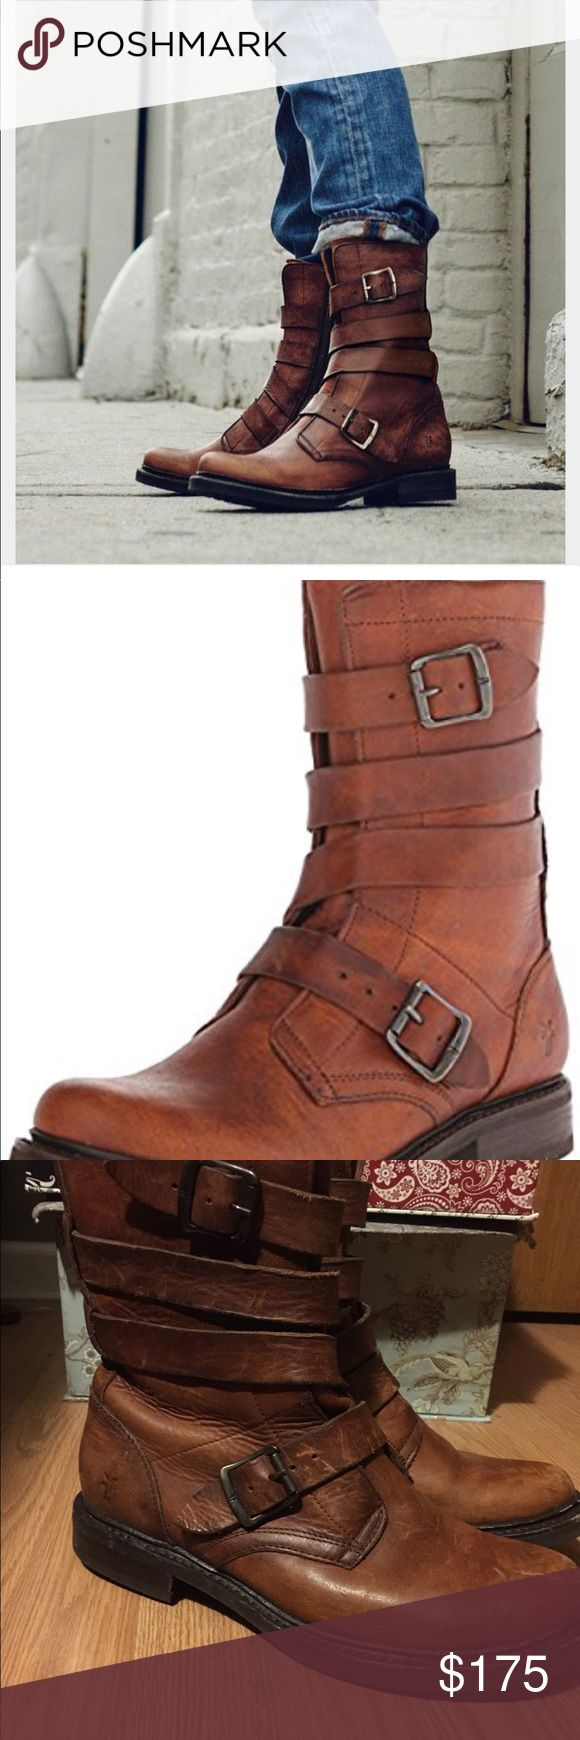 Frye Veronica Tanker Boots Perfect for a boho look the sole is sturdy. Offers a lot of support. Boot shows signs of light wear with scratches. Nothing that can't be buffered out. Would be willing to take them to get buffered and polished for extra. Please just message me and let me know. Frye Shoes Combat & Moto Boots